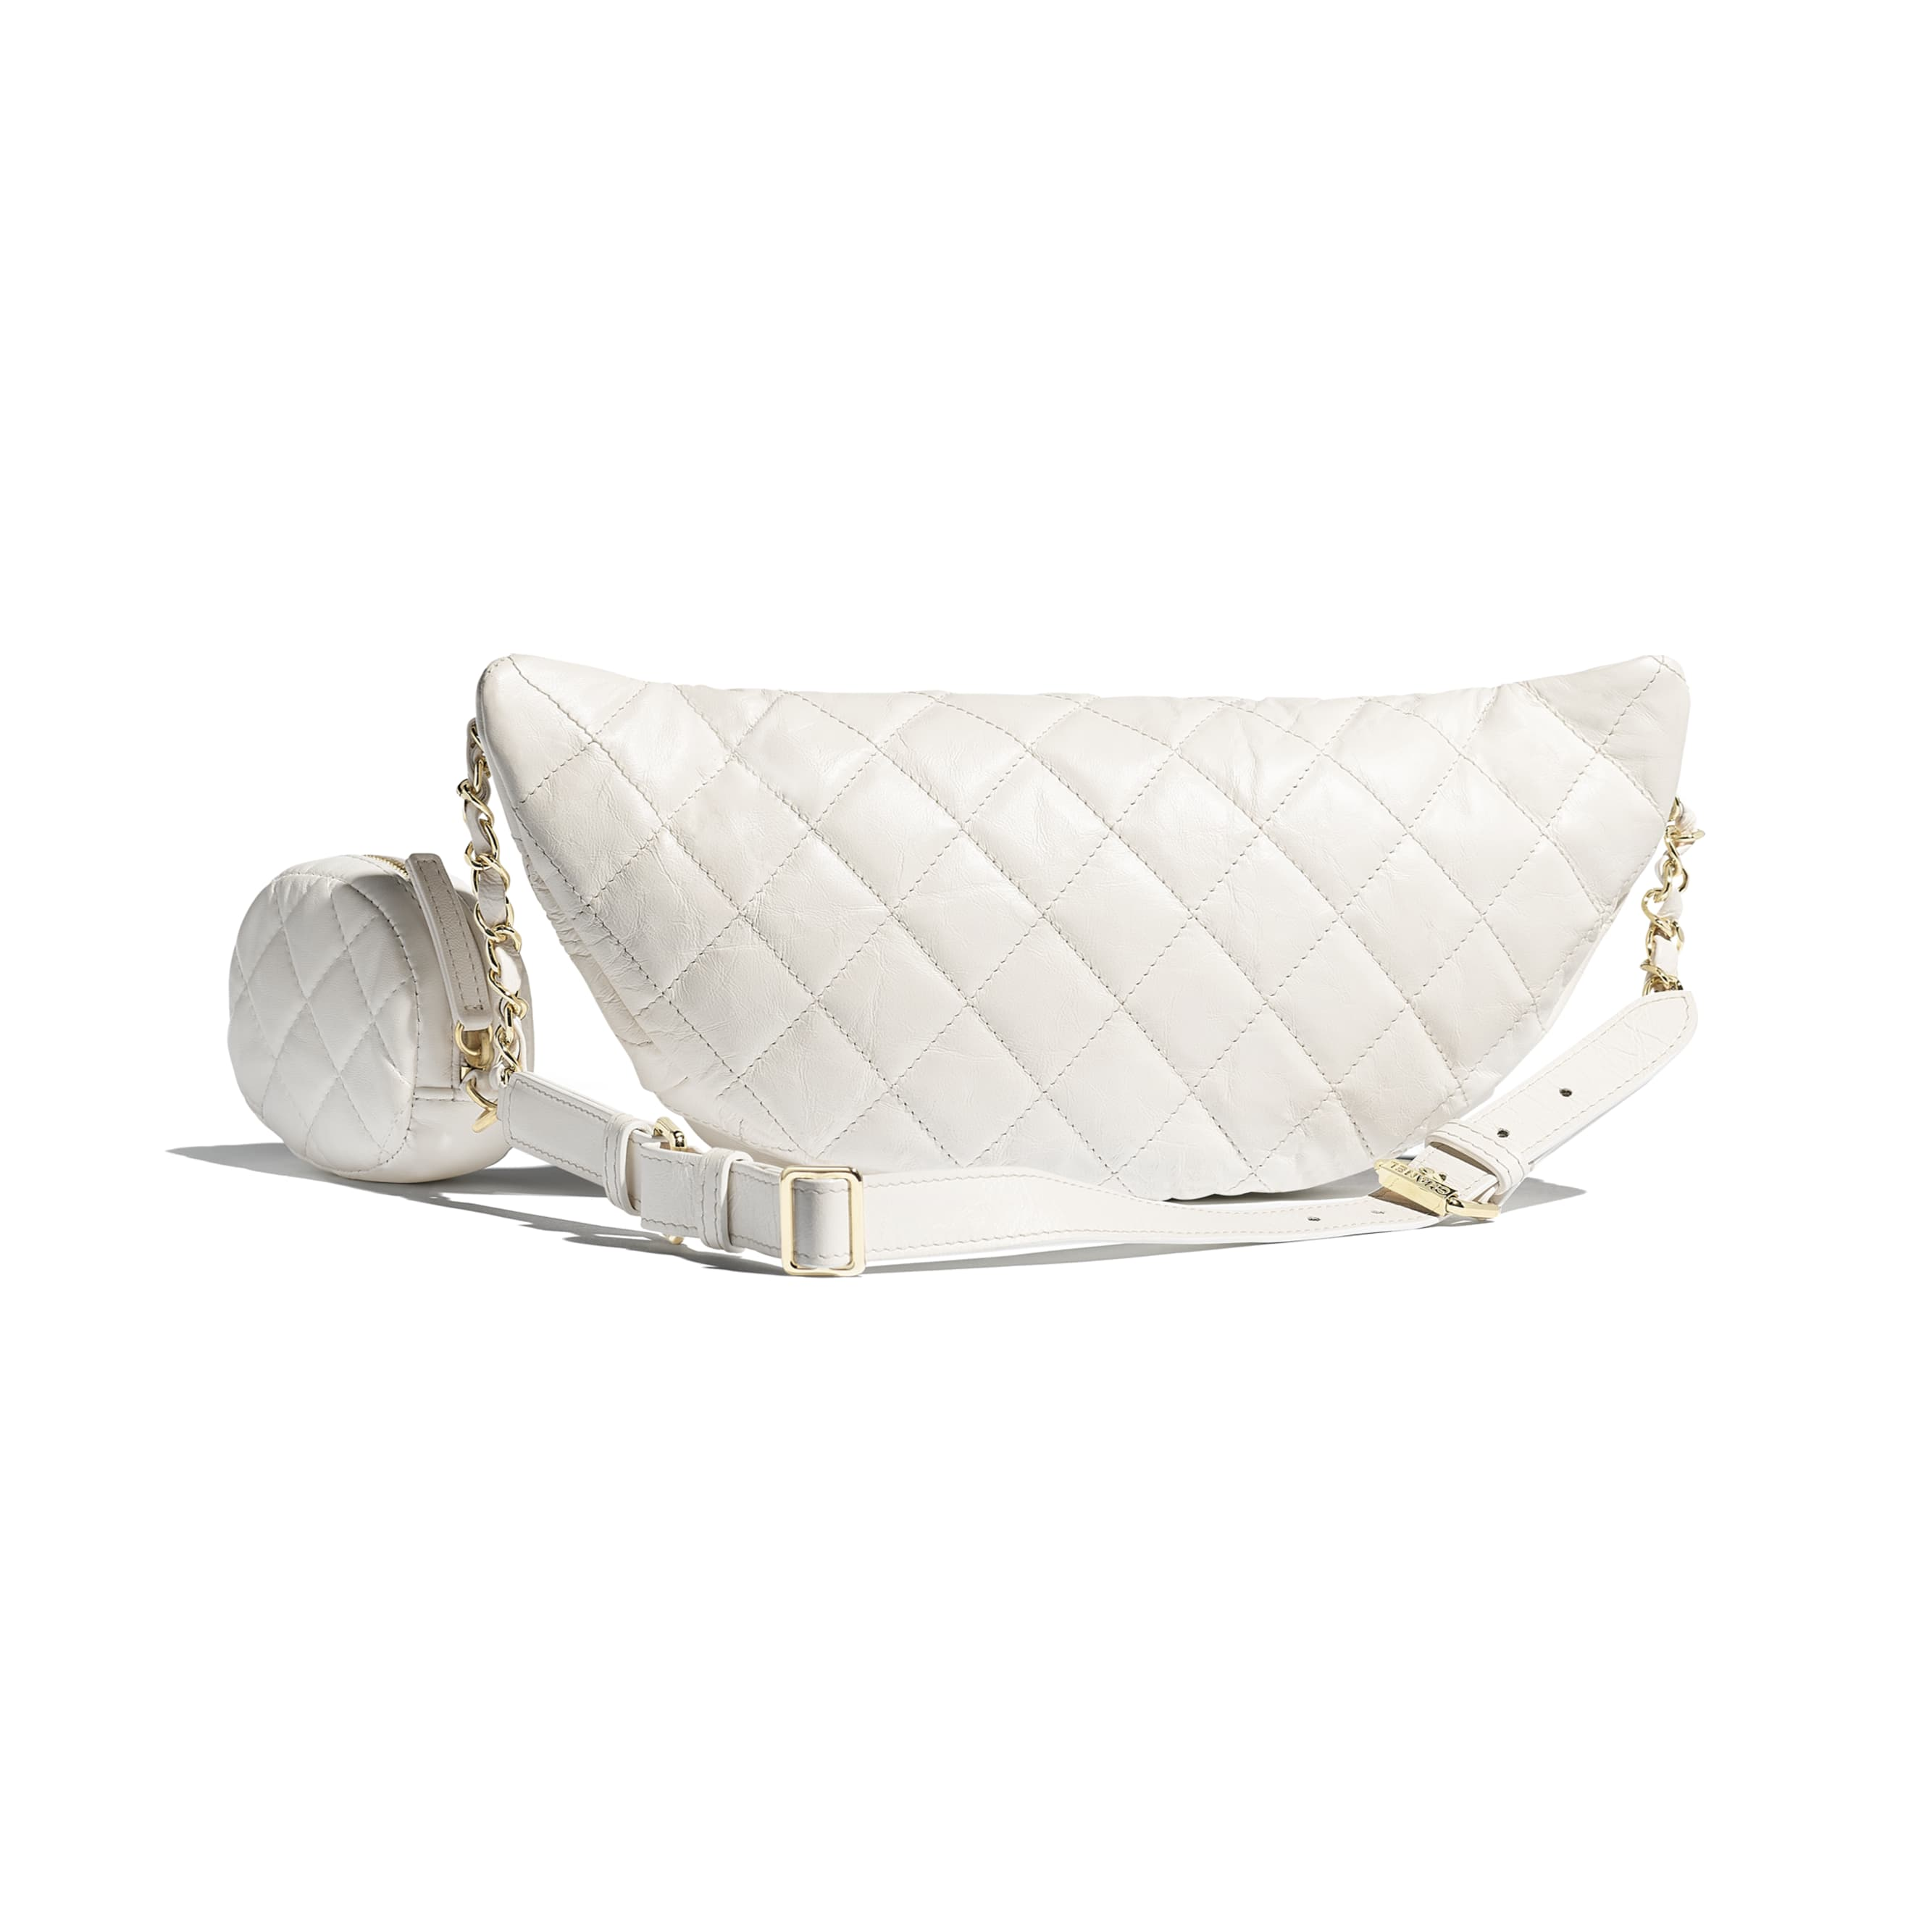 Waist Bag & Coin Purse - White - Aged Calfskin & Gold-Tone Metal - Alternative view - see standard sized version